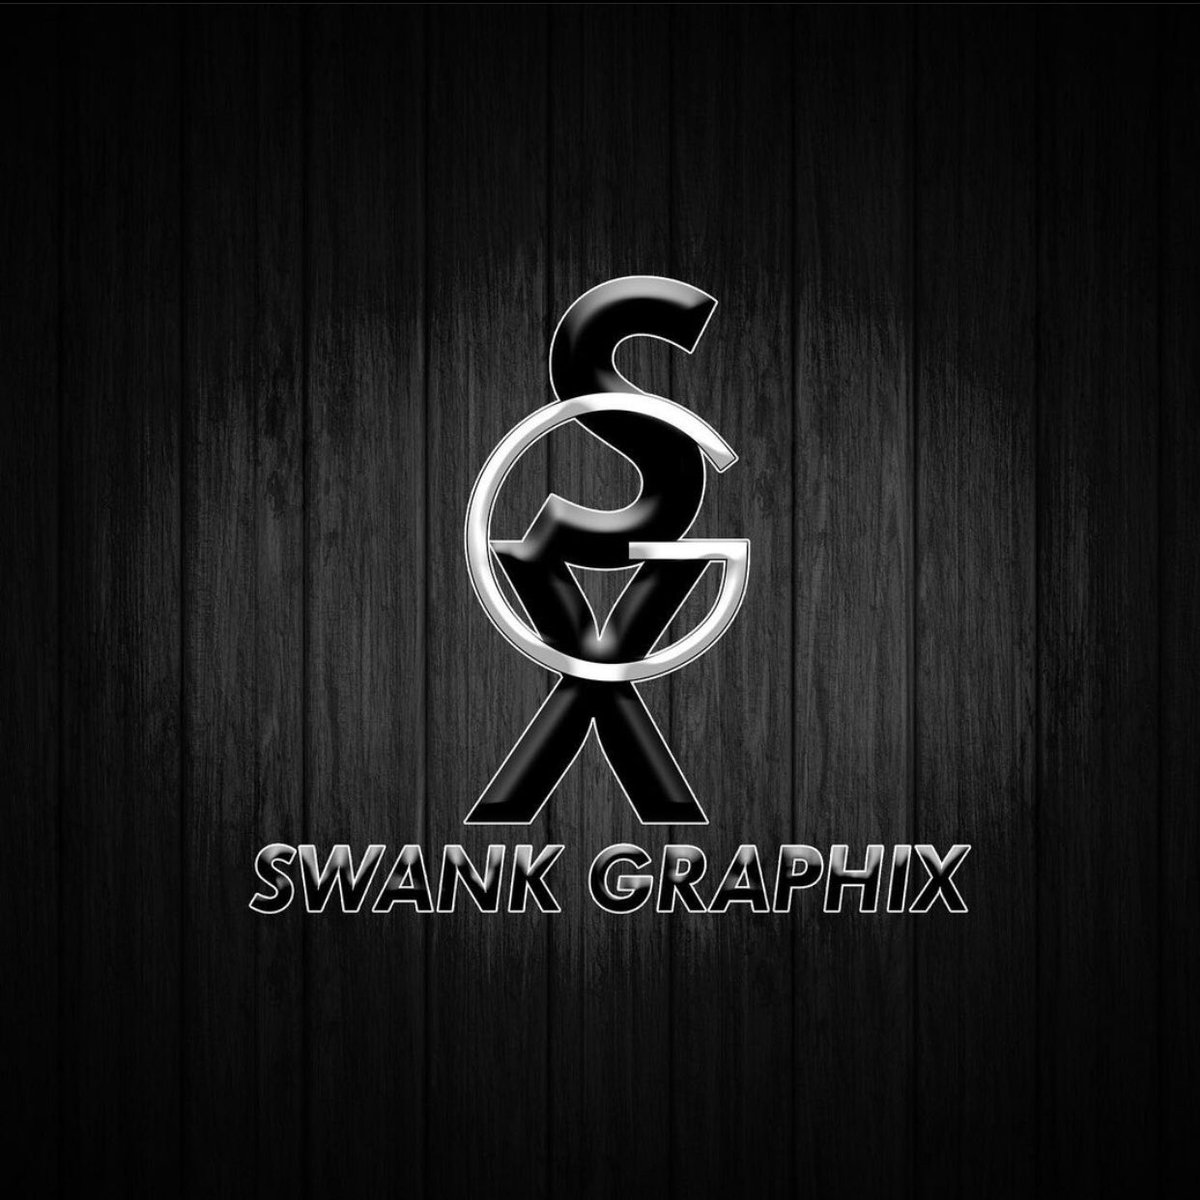 Hello! I am a graphic designer, and I've been working to better my craft everyday. If you're in need of anything like logos, cover arts, or clothing mock-ups, hit me up on Instagram! @swankgraphix I would greatly appreciate the repost!  #smallbusinessssaturday #buyblack #graphic https://t.co/Z38ww3GkG6